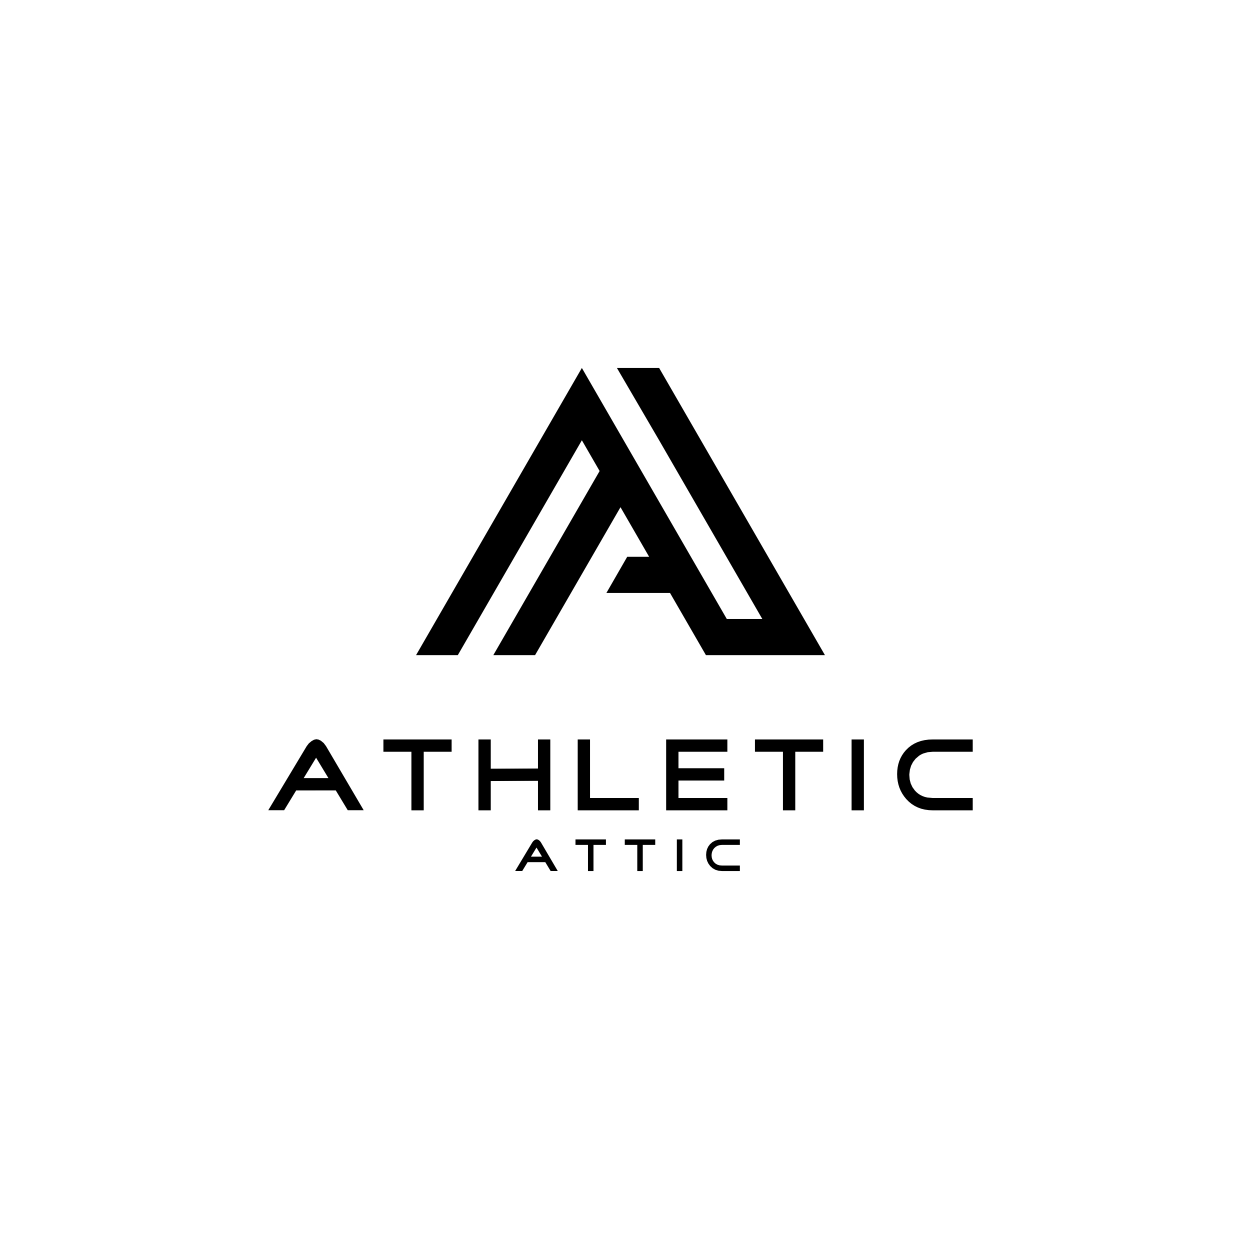 Logo Design by Analla Art - Entry No. 27 in the Logo Design Contest Fun Logo Design for Athletic Attic.